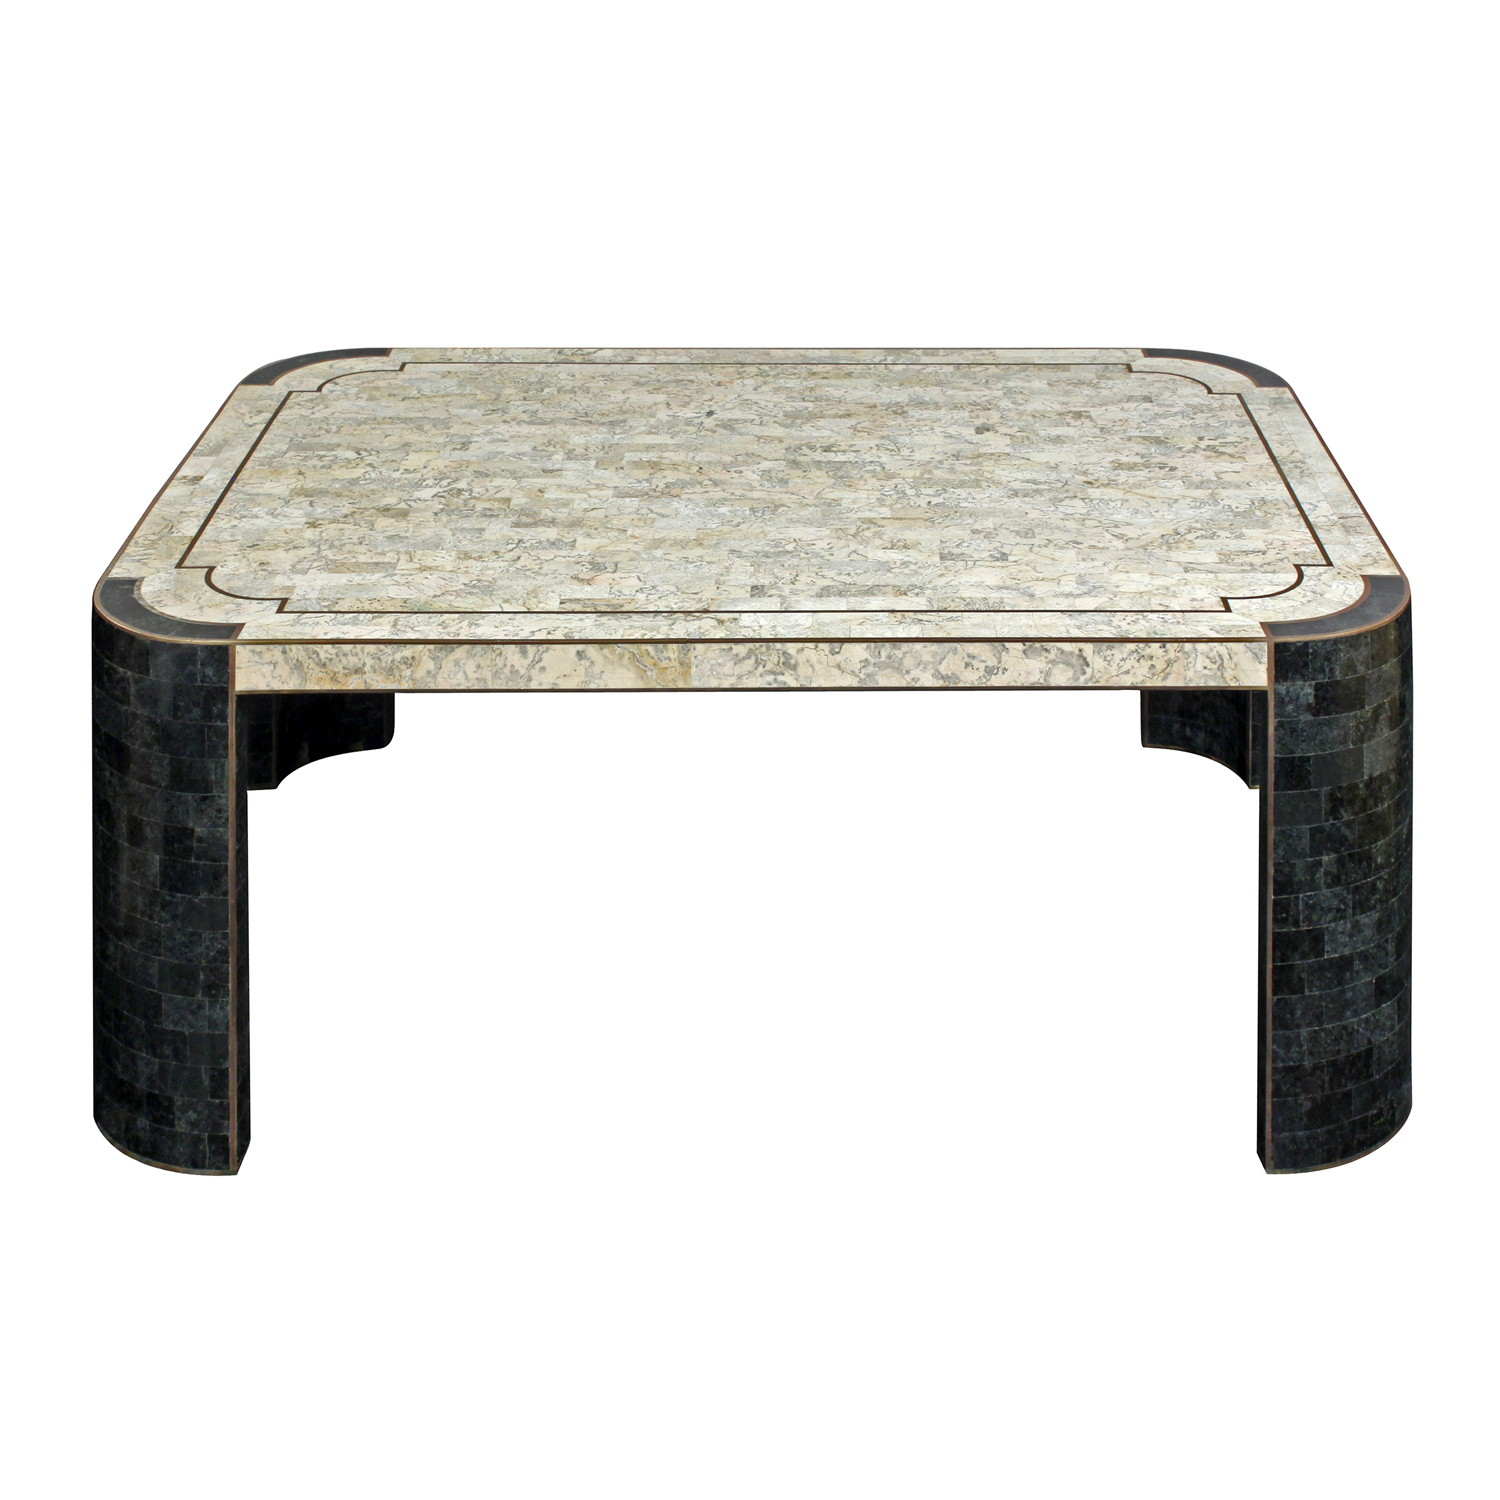 Maitland Smith 55 lt+drk tesstone coffeetable218 hires main.jpg